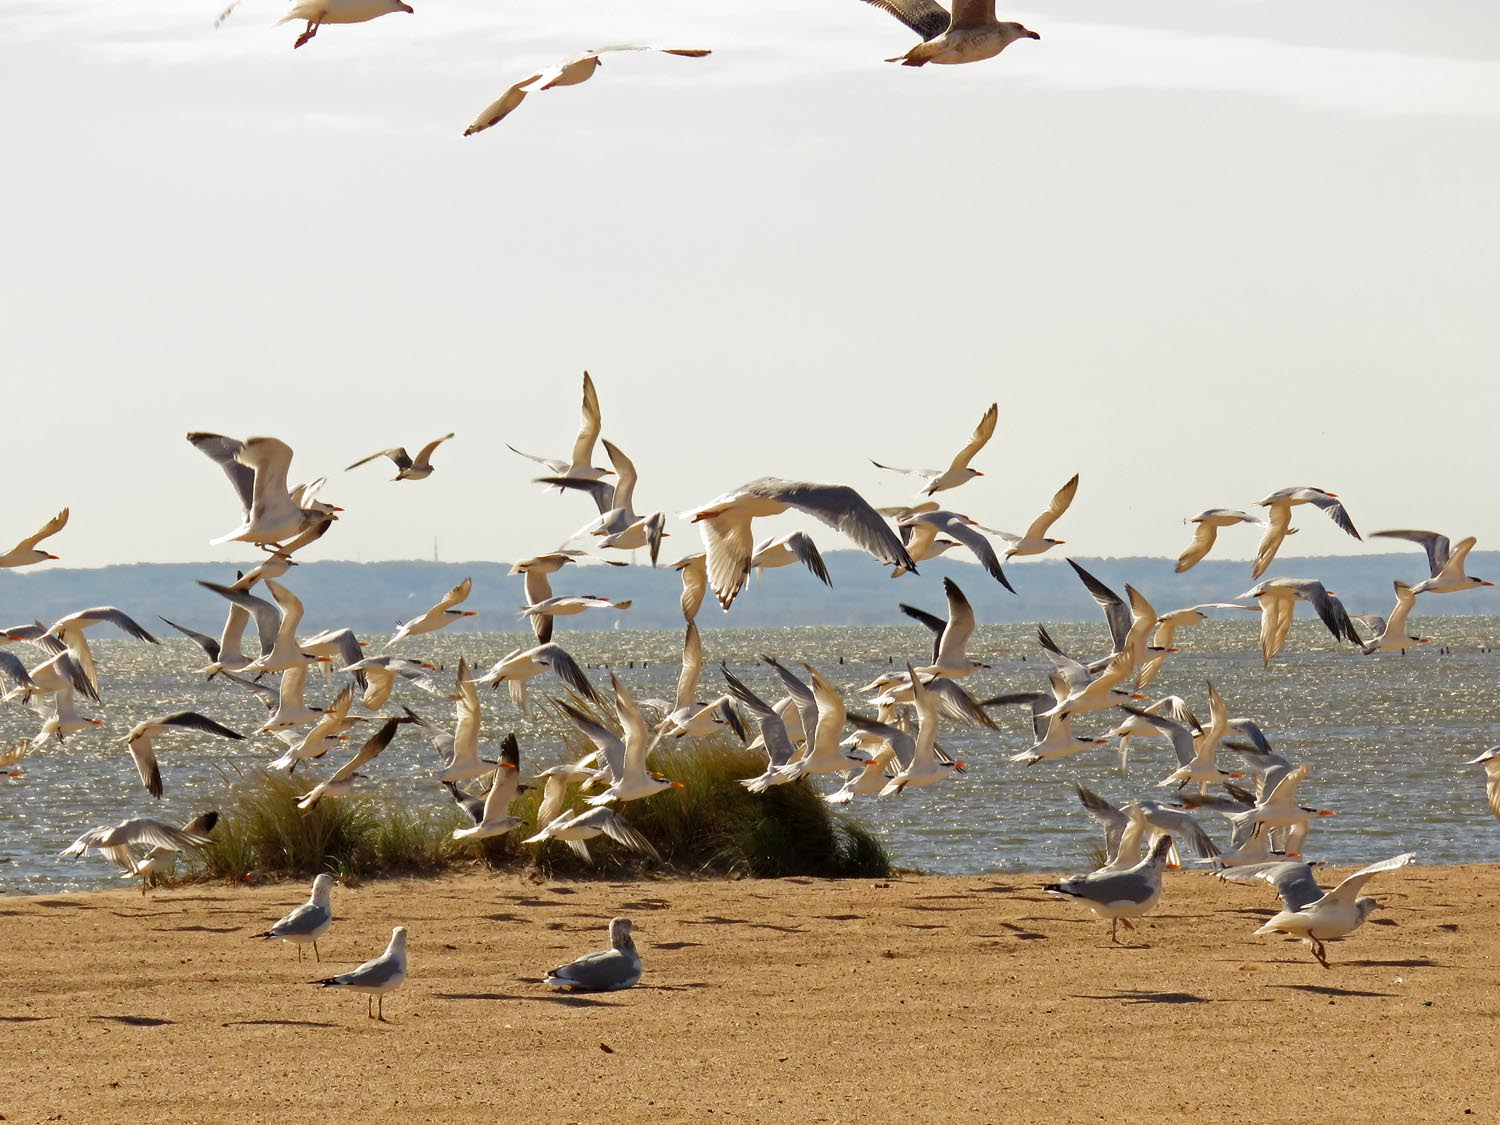 Flying terns and gulls, Midland Beach, October 31, 2017